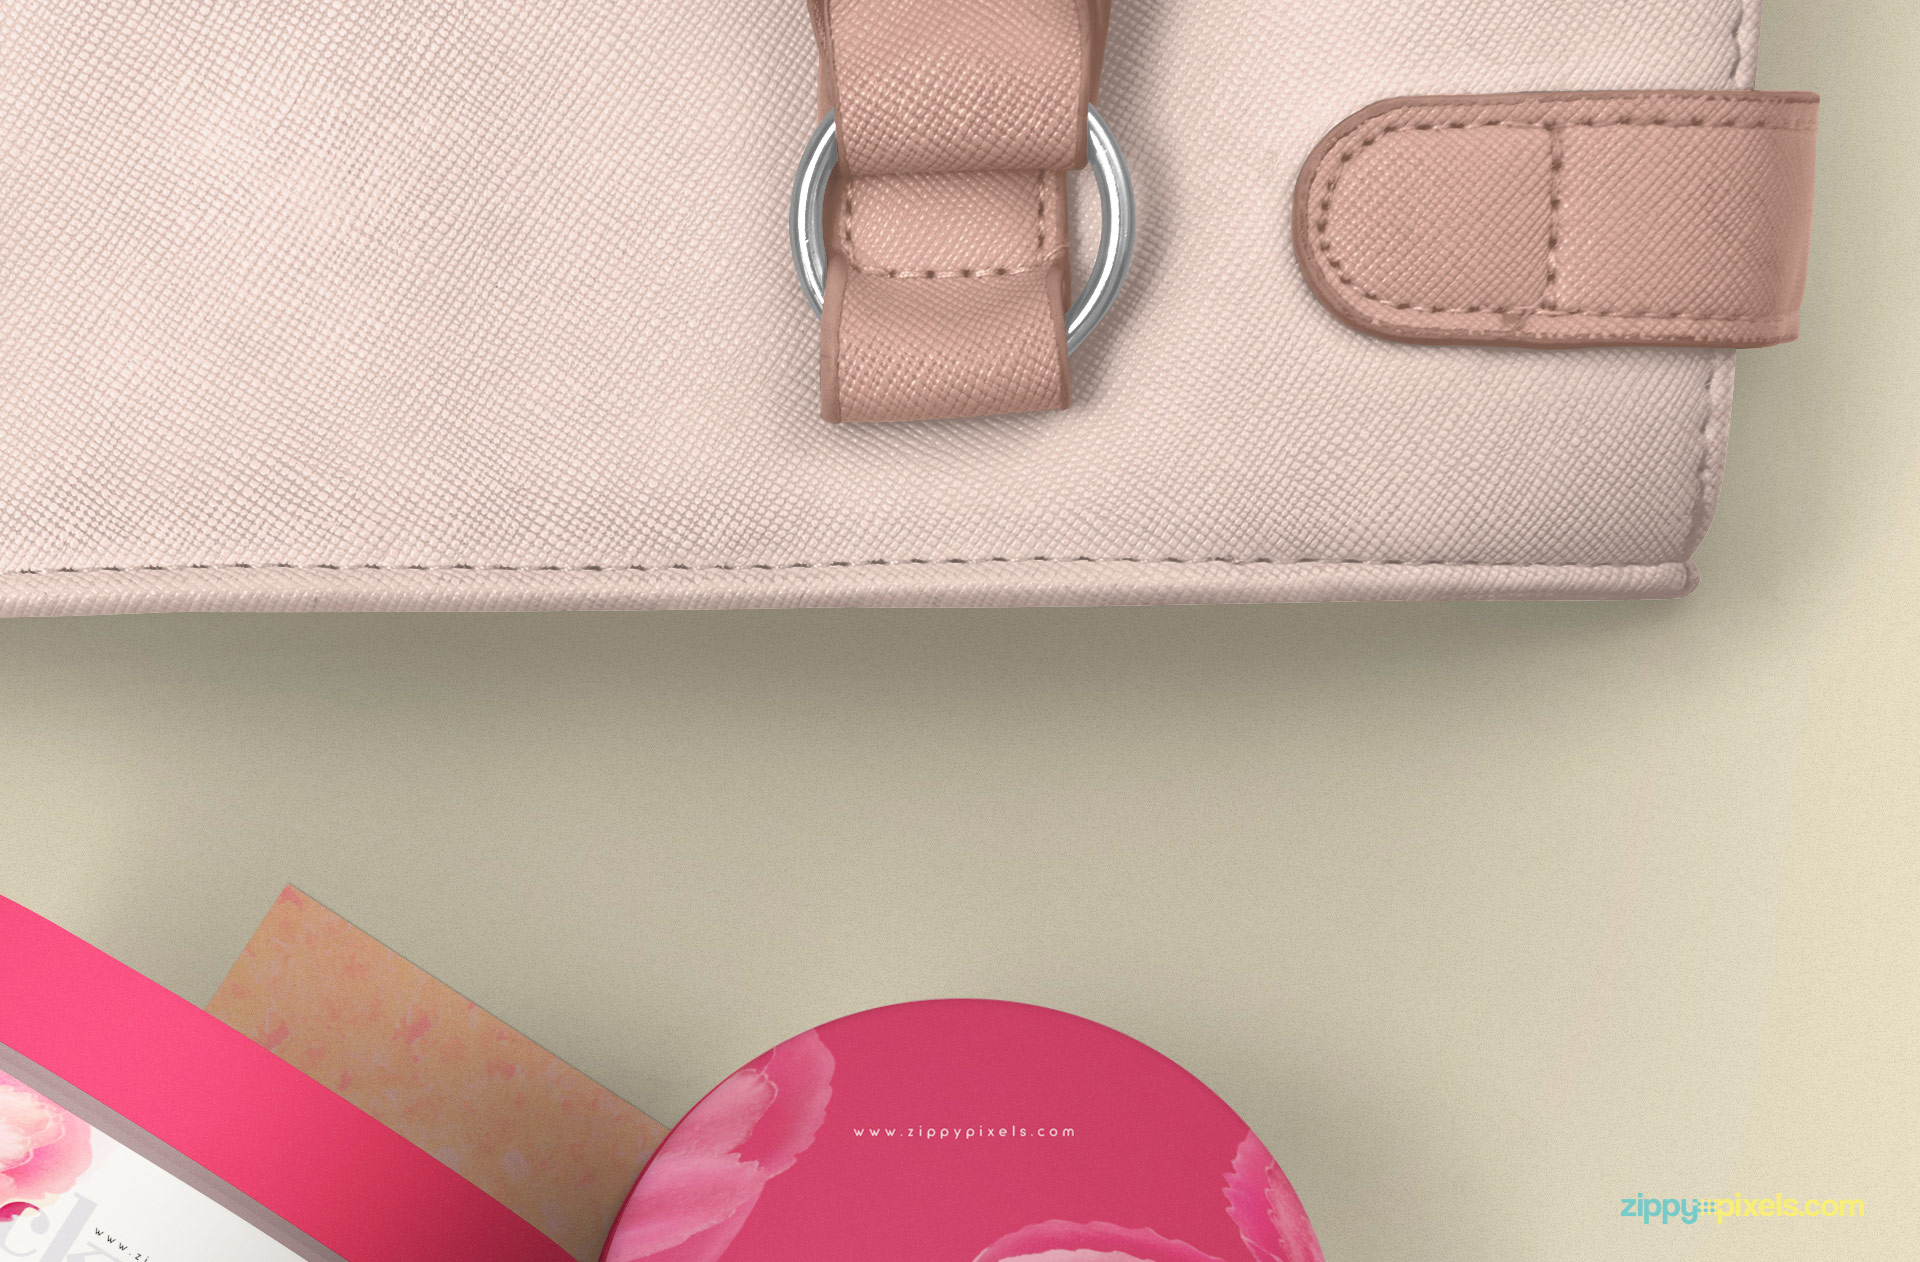 Adjust the color of the ladies bag.